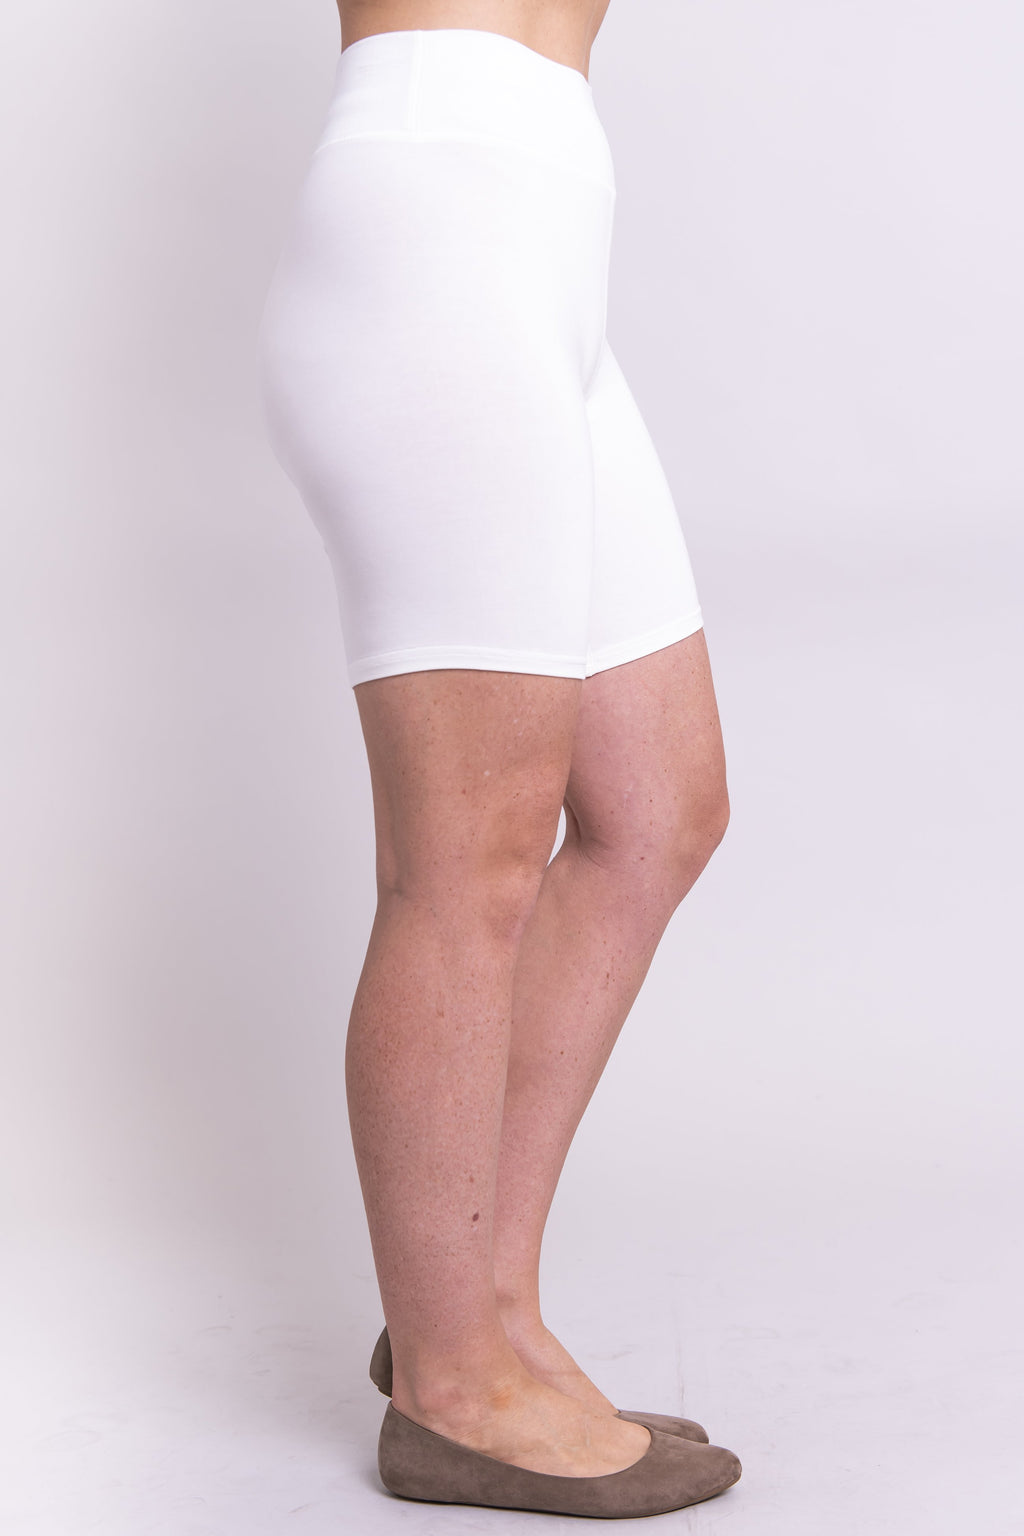 Hallie Undershorts, White - Blue Sky Clothing Co